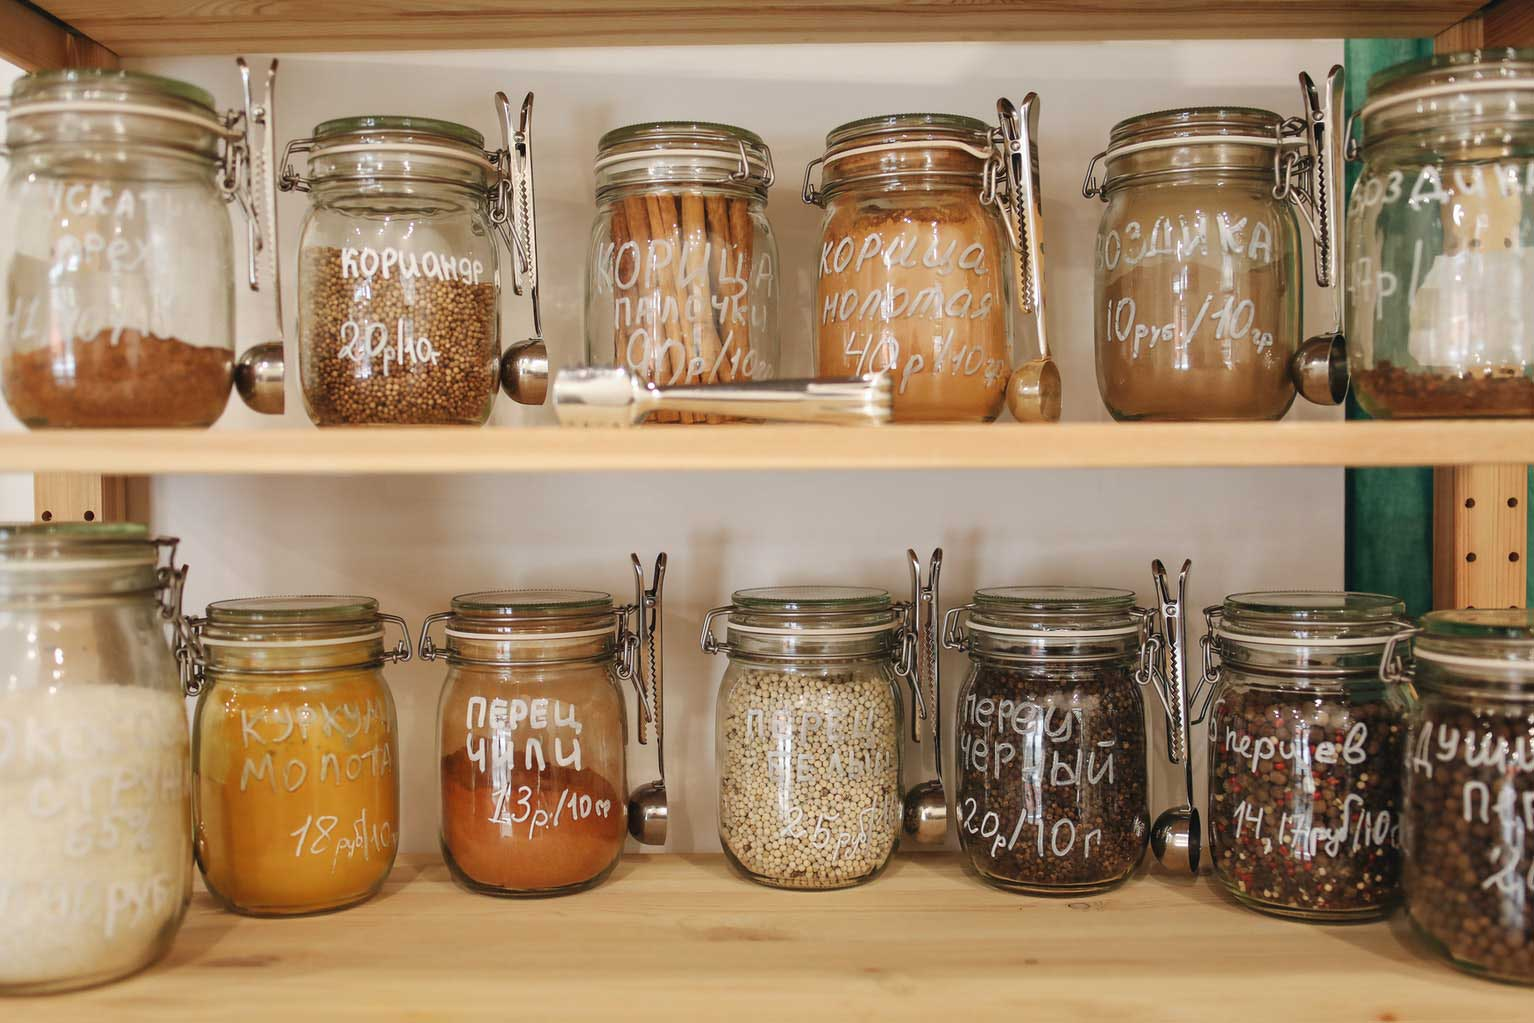 food-pantry-staples-and-spice-jars